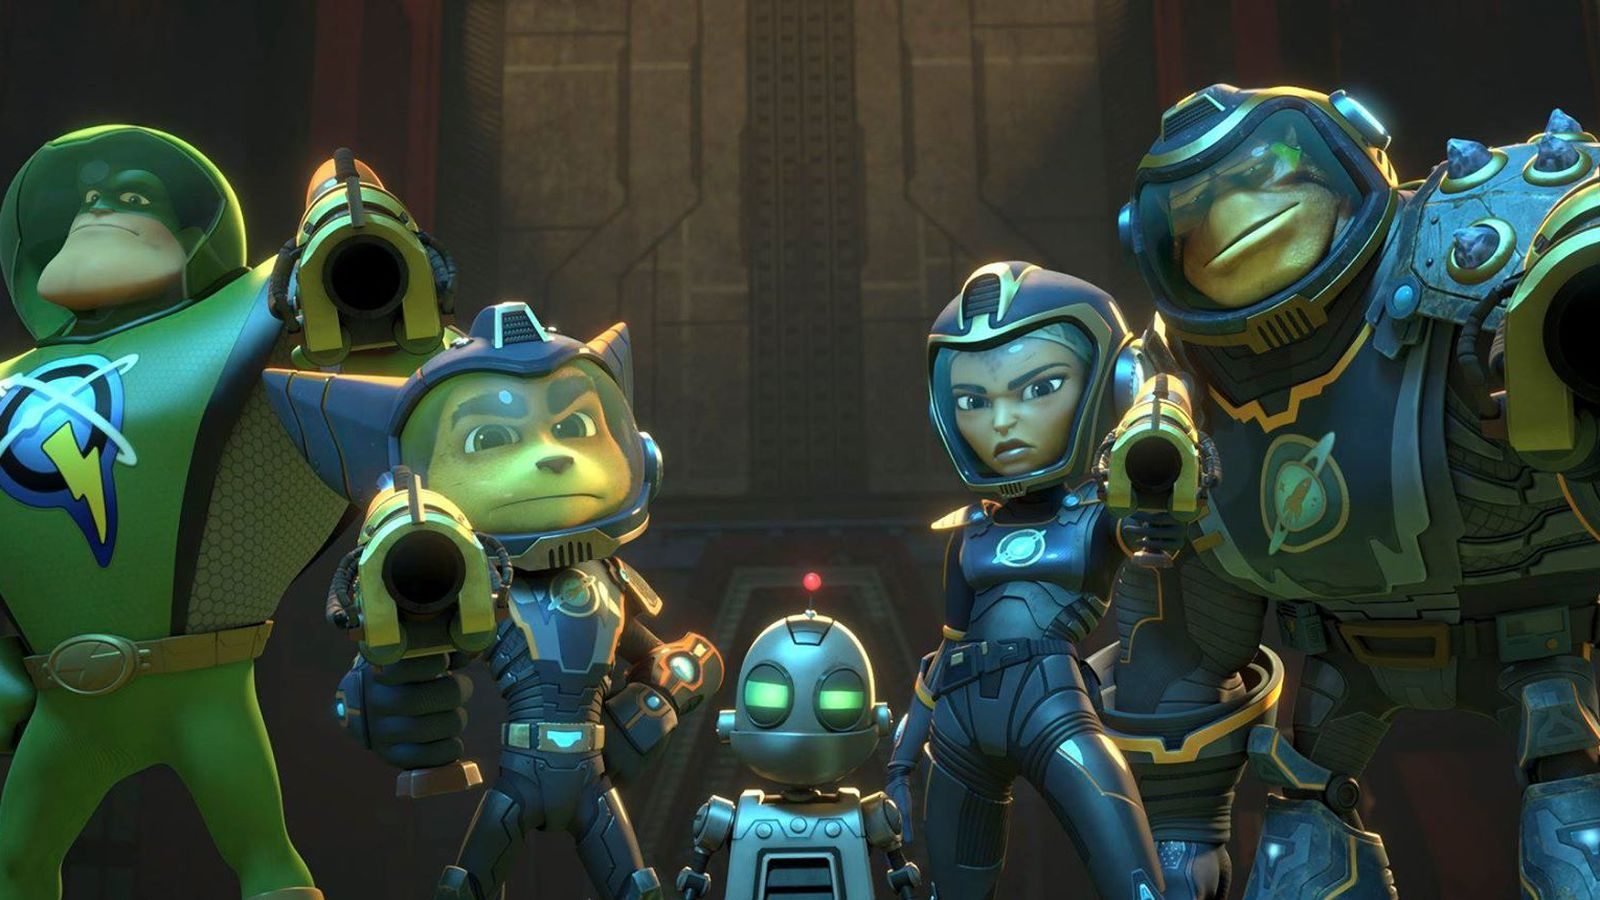 ratchet and clank 2002 cutscenes